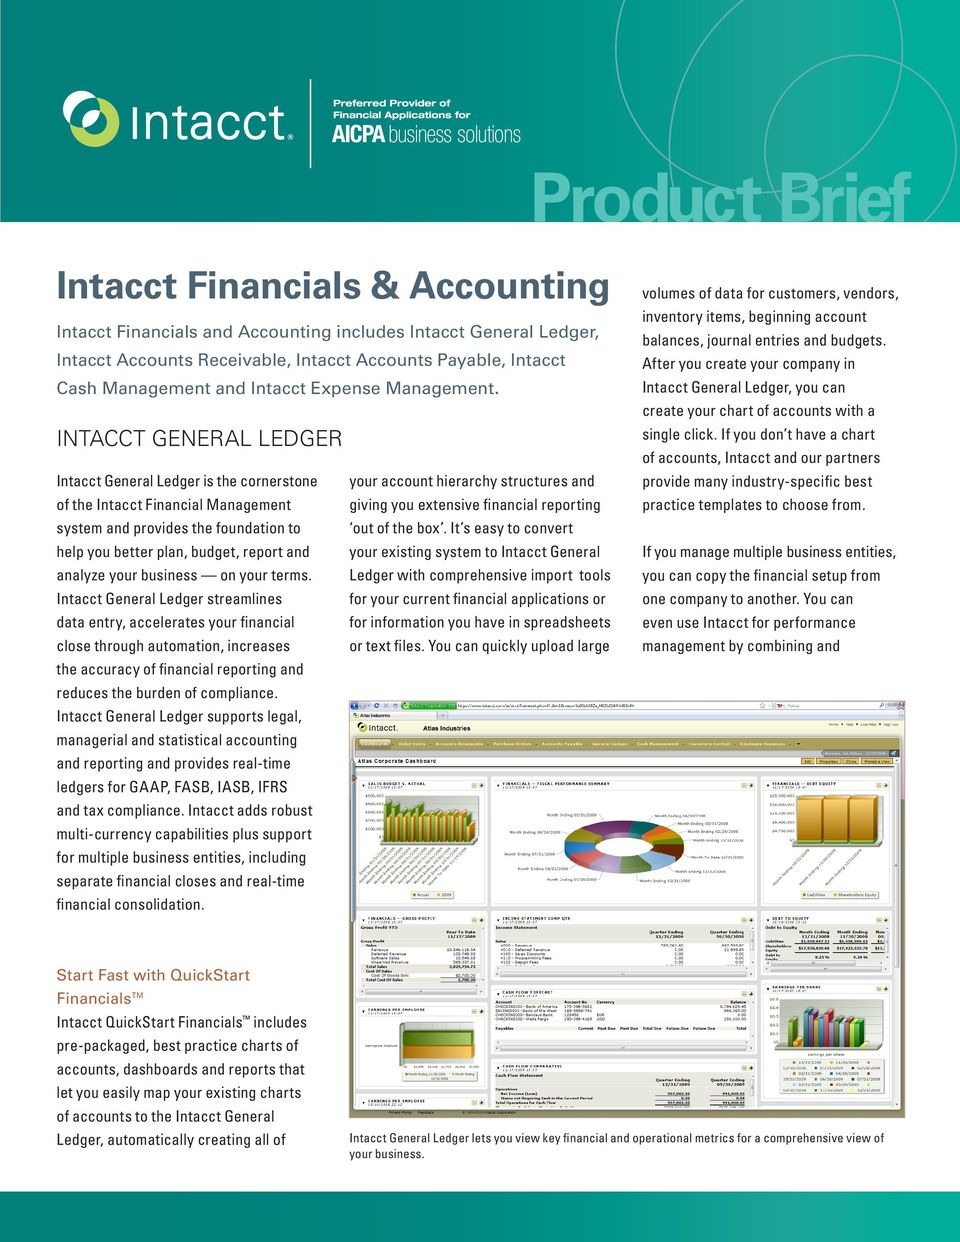 Intacct General Ledger Intacct General Ledger is the cornerstone your account hierarchy structures and of the Intacct Financial Management giving you extensive financial reporting system and provides